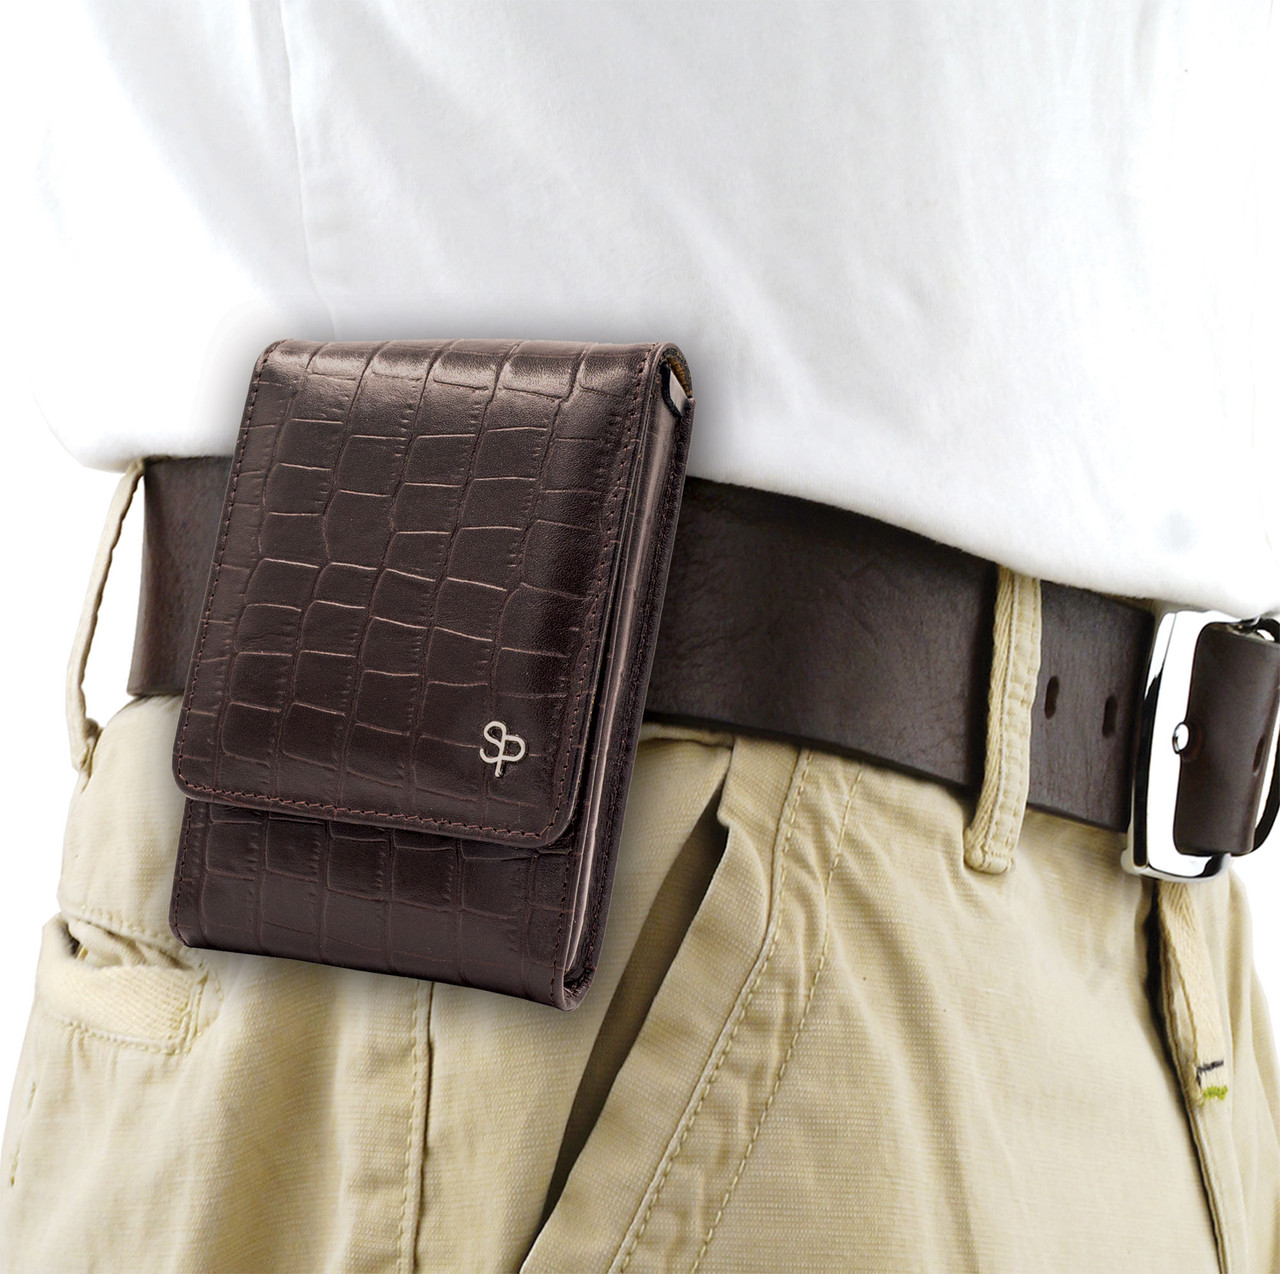 Ruger American 9 Compact Brown Alligator Series Holster